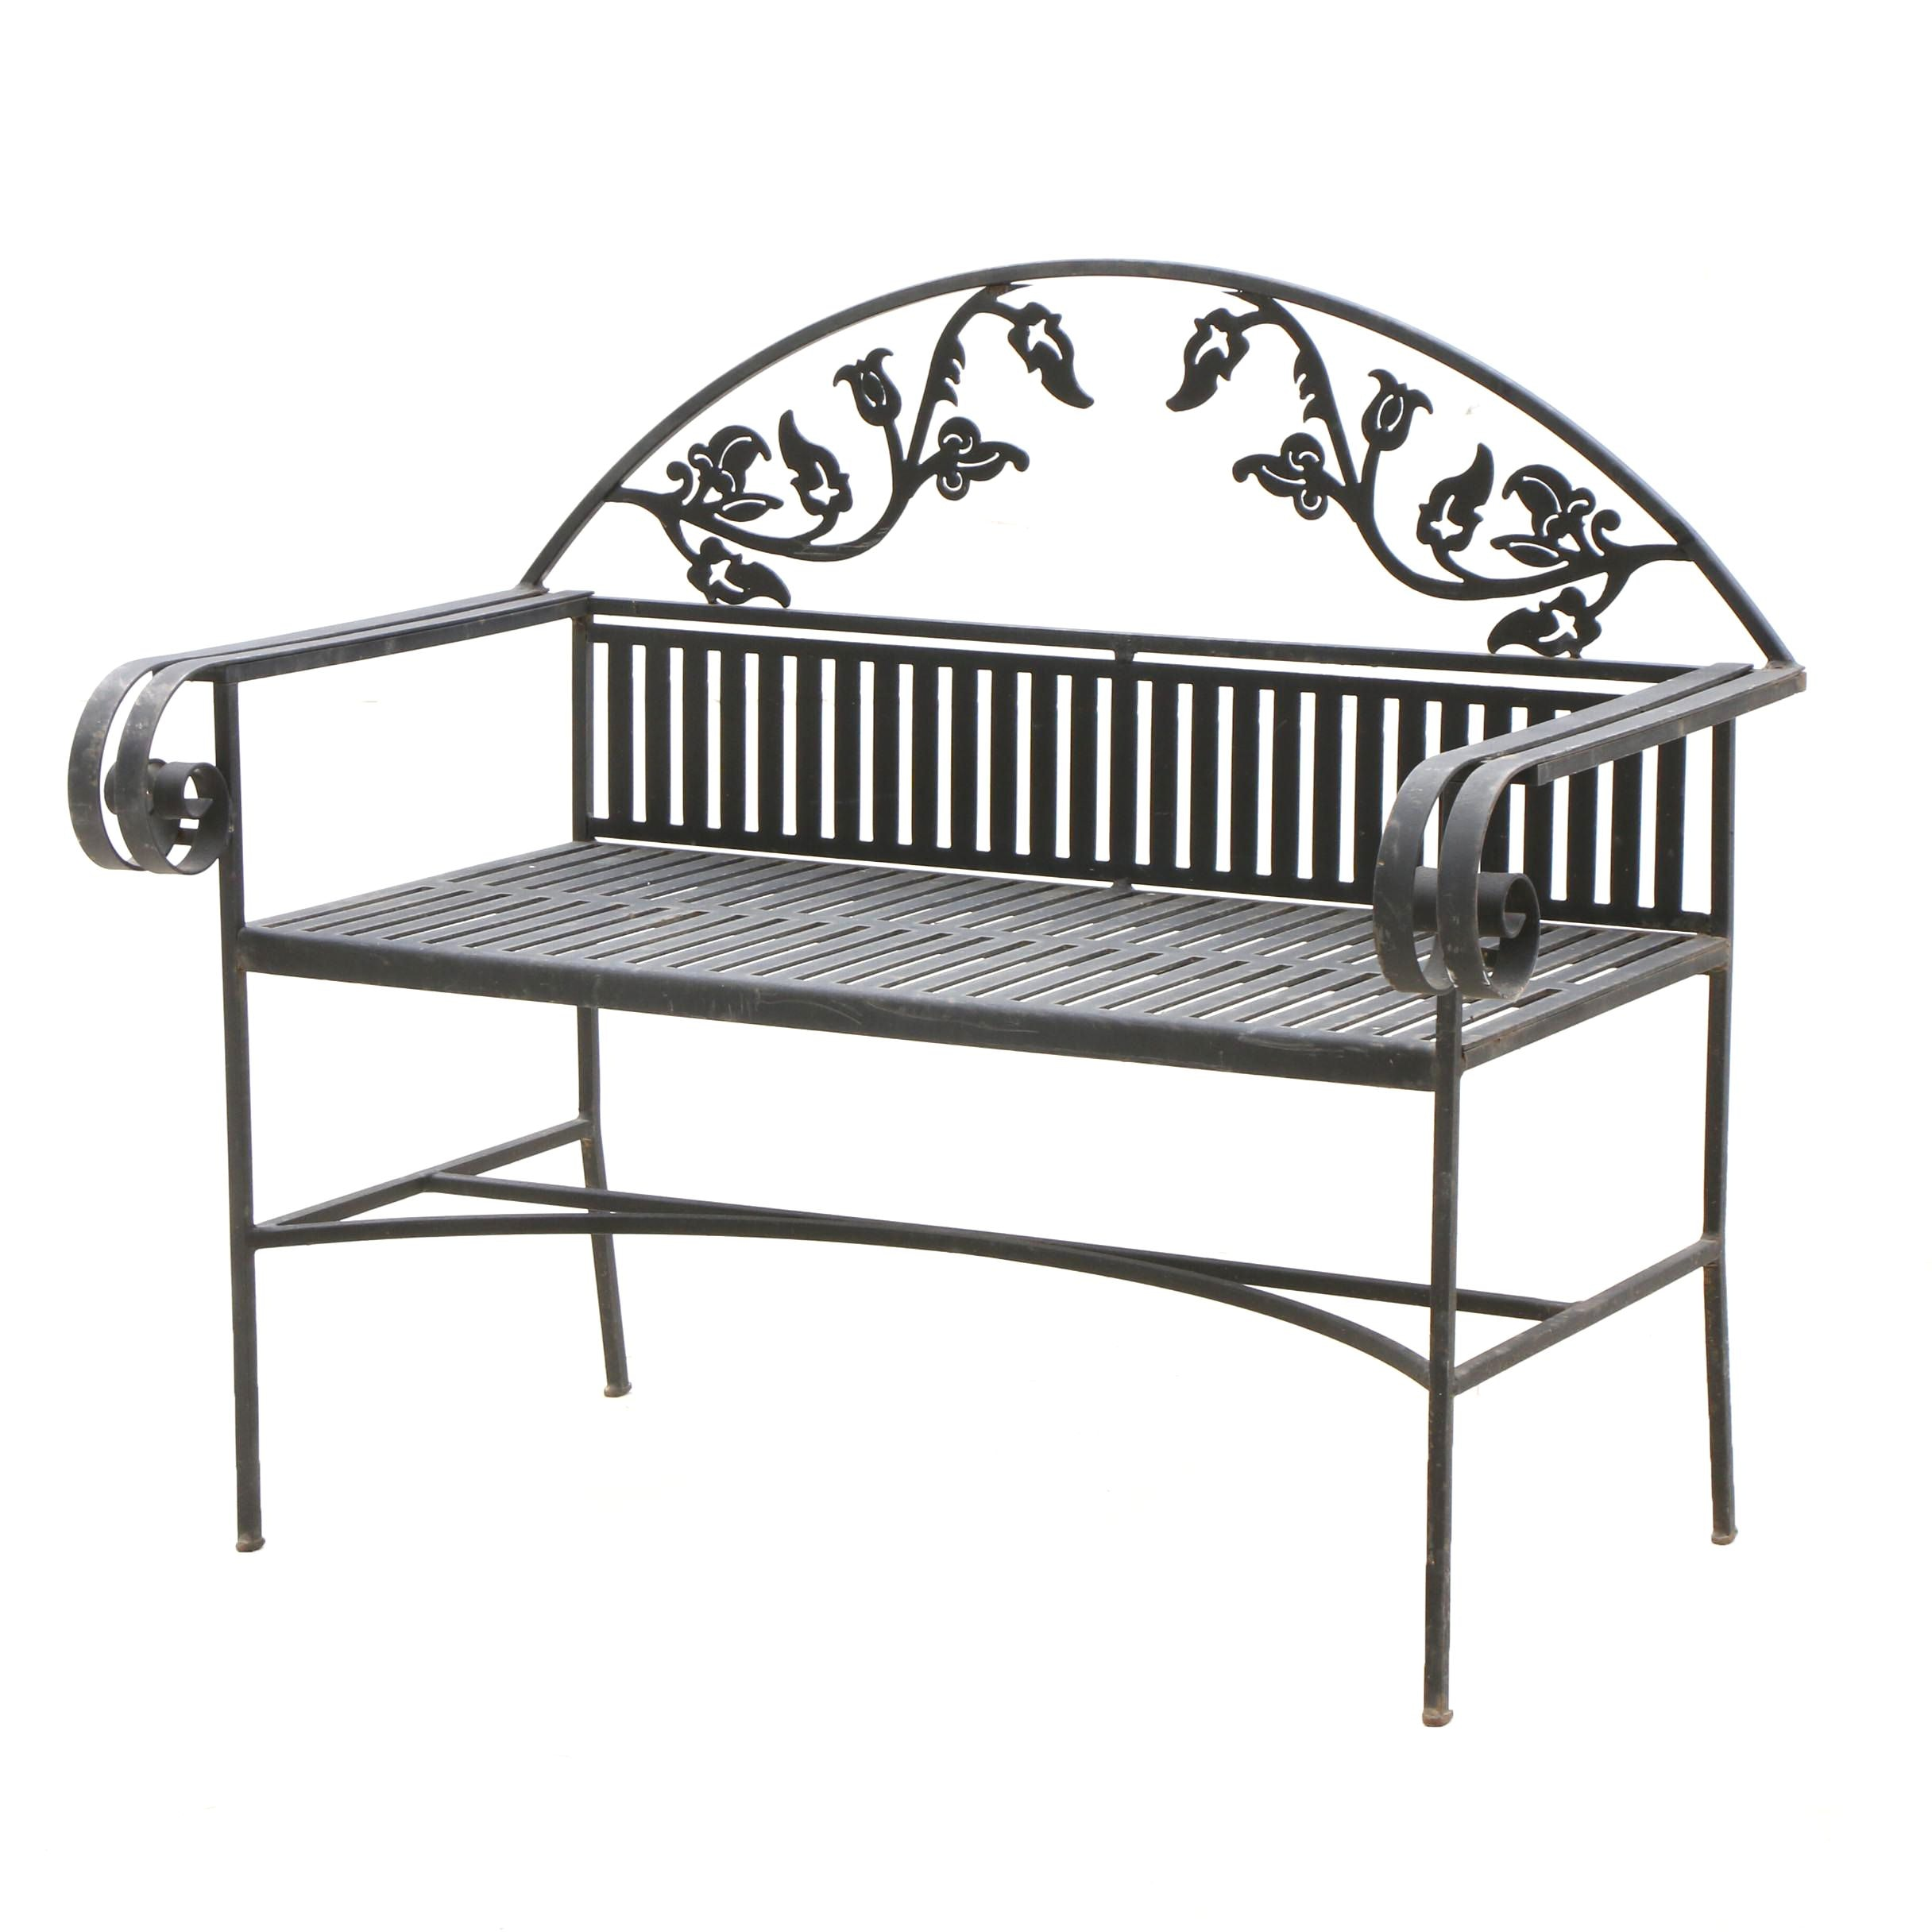 Cast Metal Garden Bench in Floral and Foliate Motif